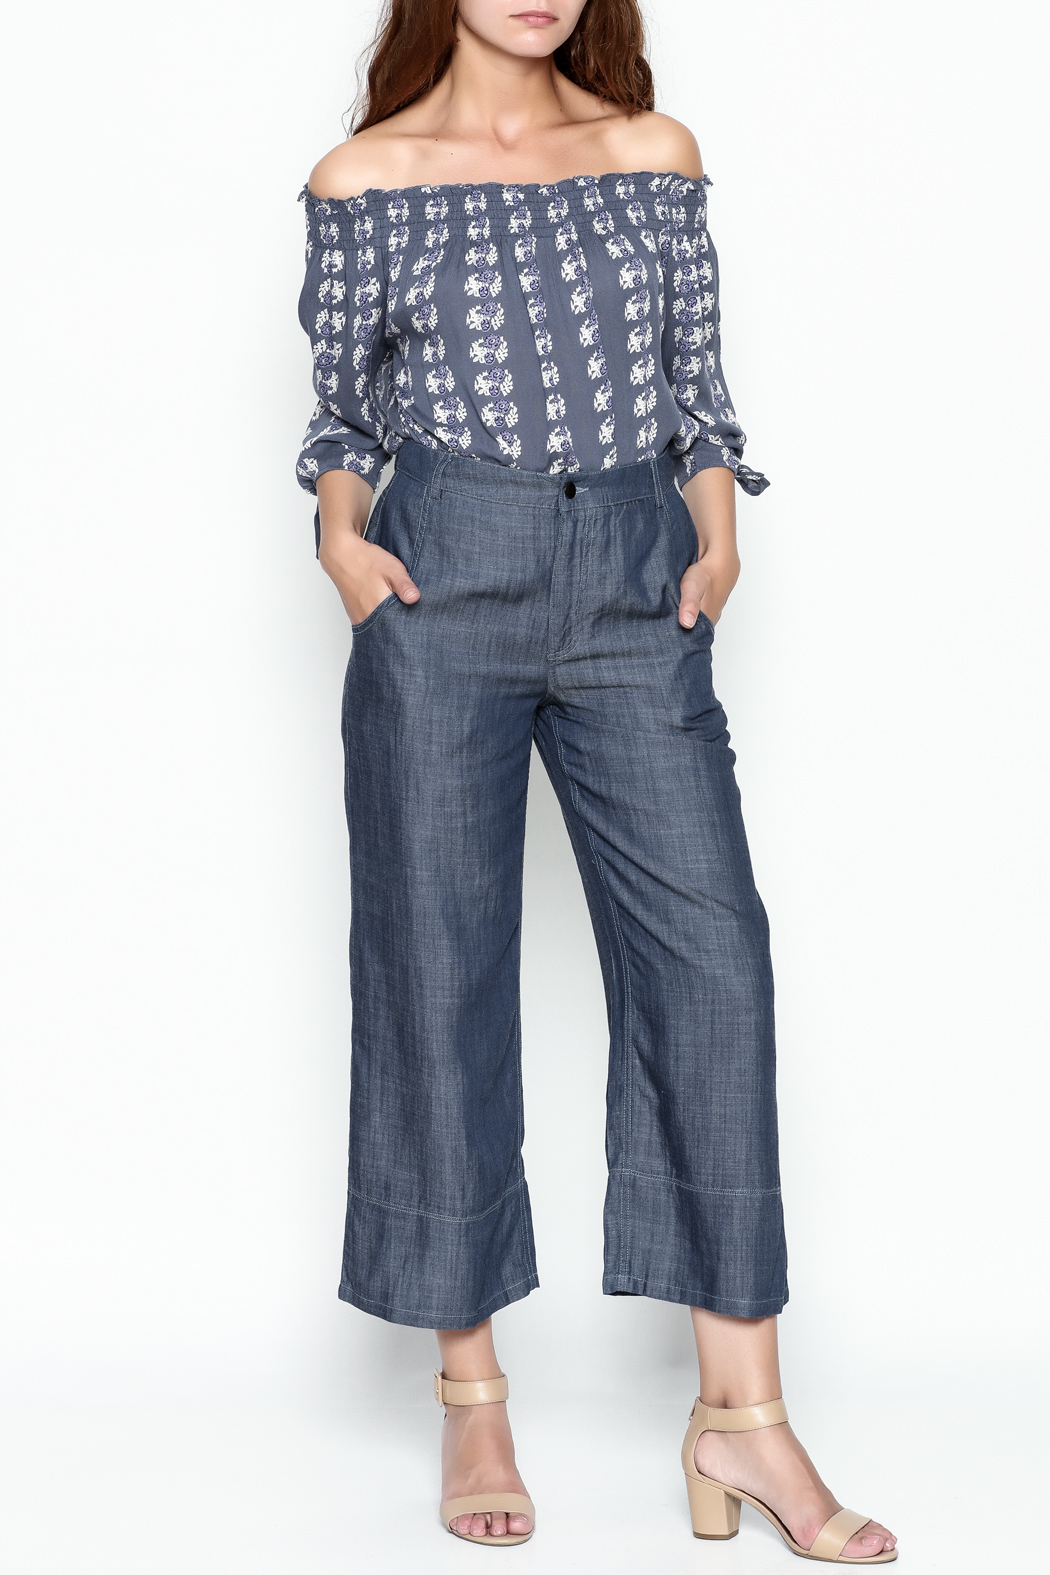 Current Air Tencel Culotte Pants - Side Cropped Image